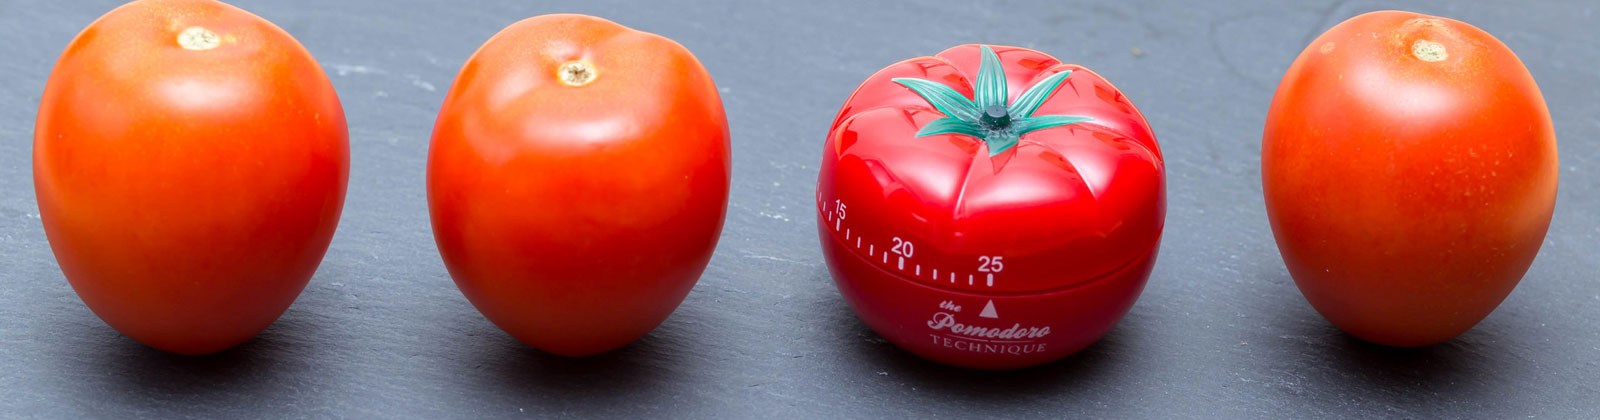 La tecnica del pomodoro. Immagine tratta da http://foto.wuestenigel.com/the-pomodoro-technique-effective-time-management-method/